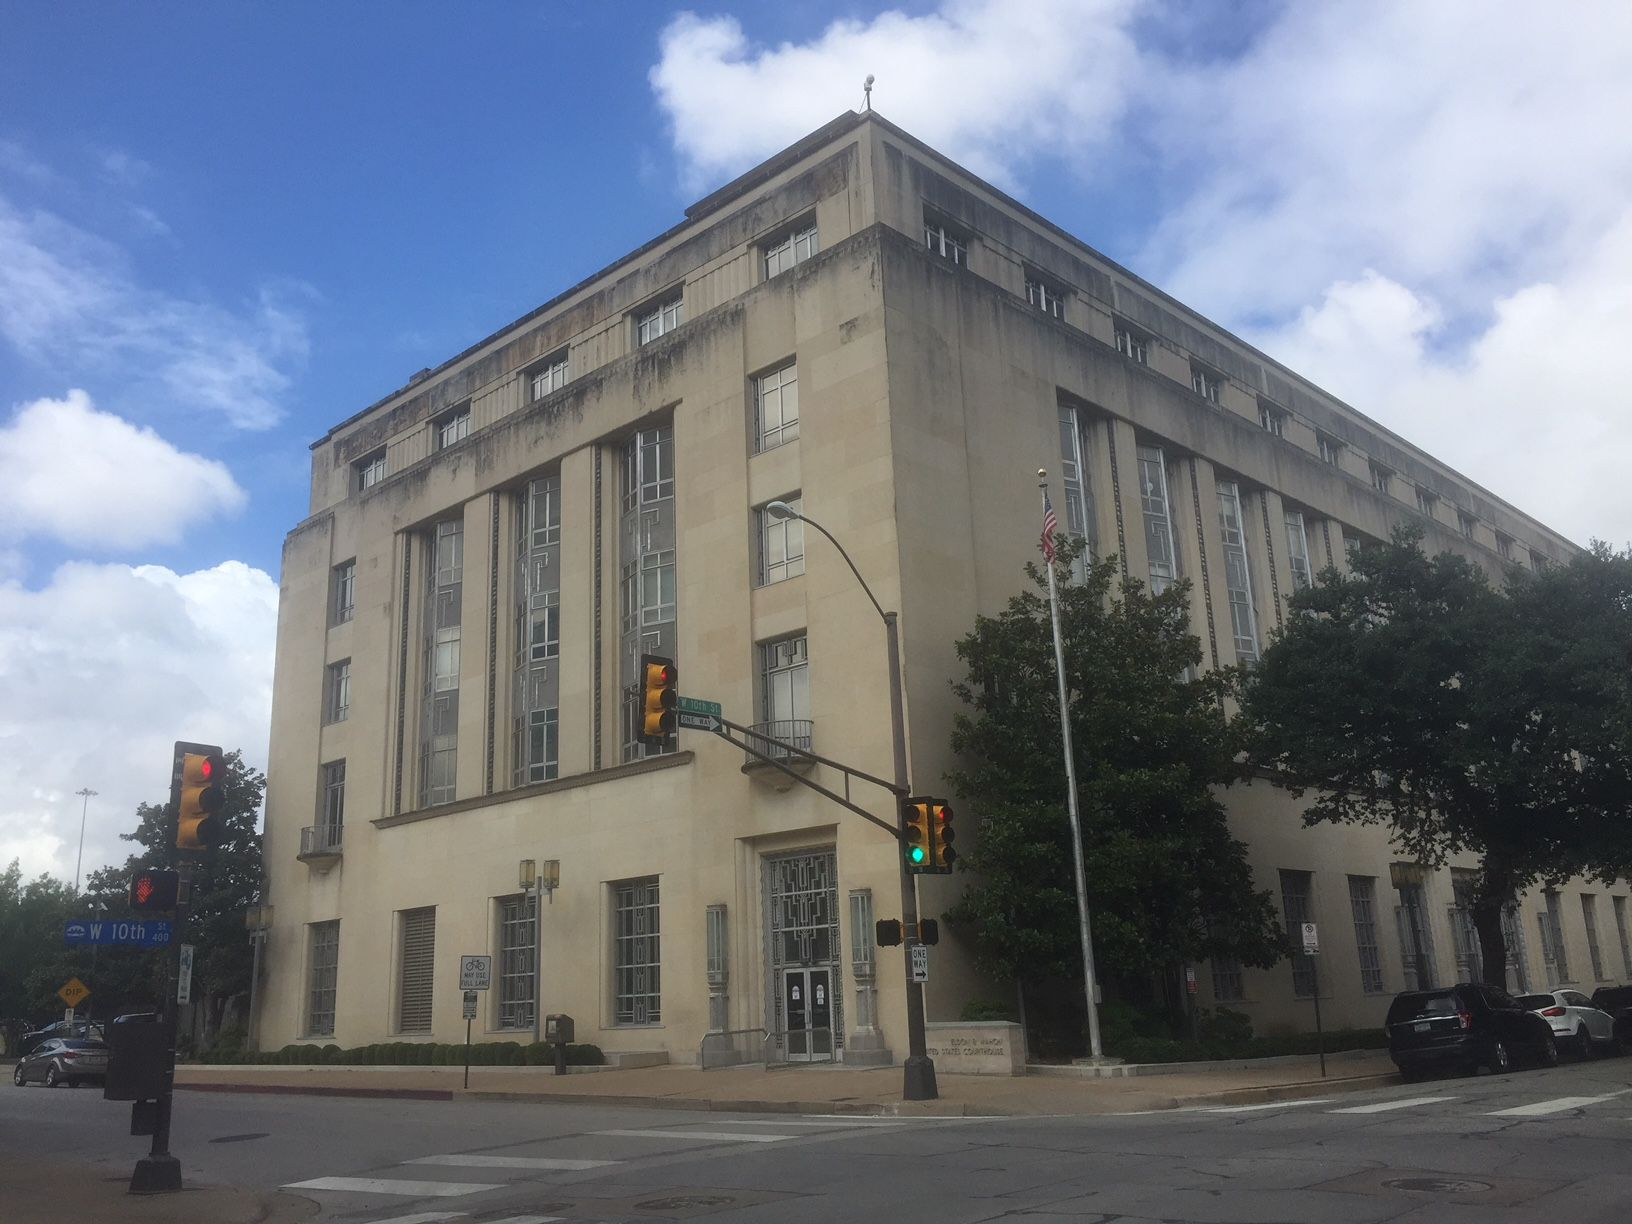 U.S. District Judge Reed O'Connor is one of only three federal judges to hear cases filed in the Fort Worth division of the Northern District of Texas.